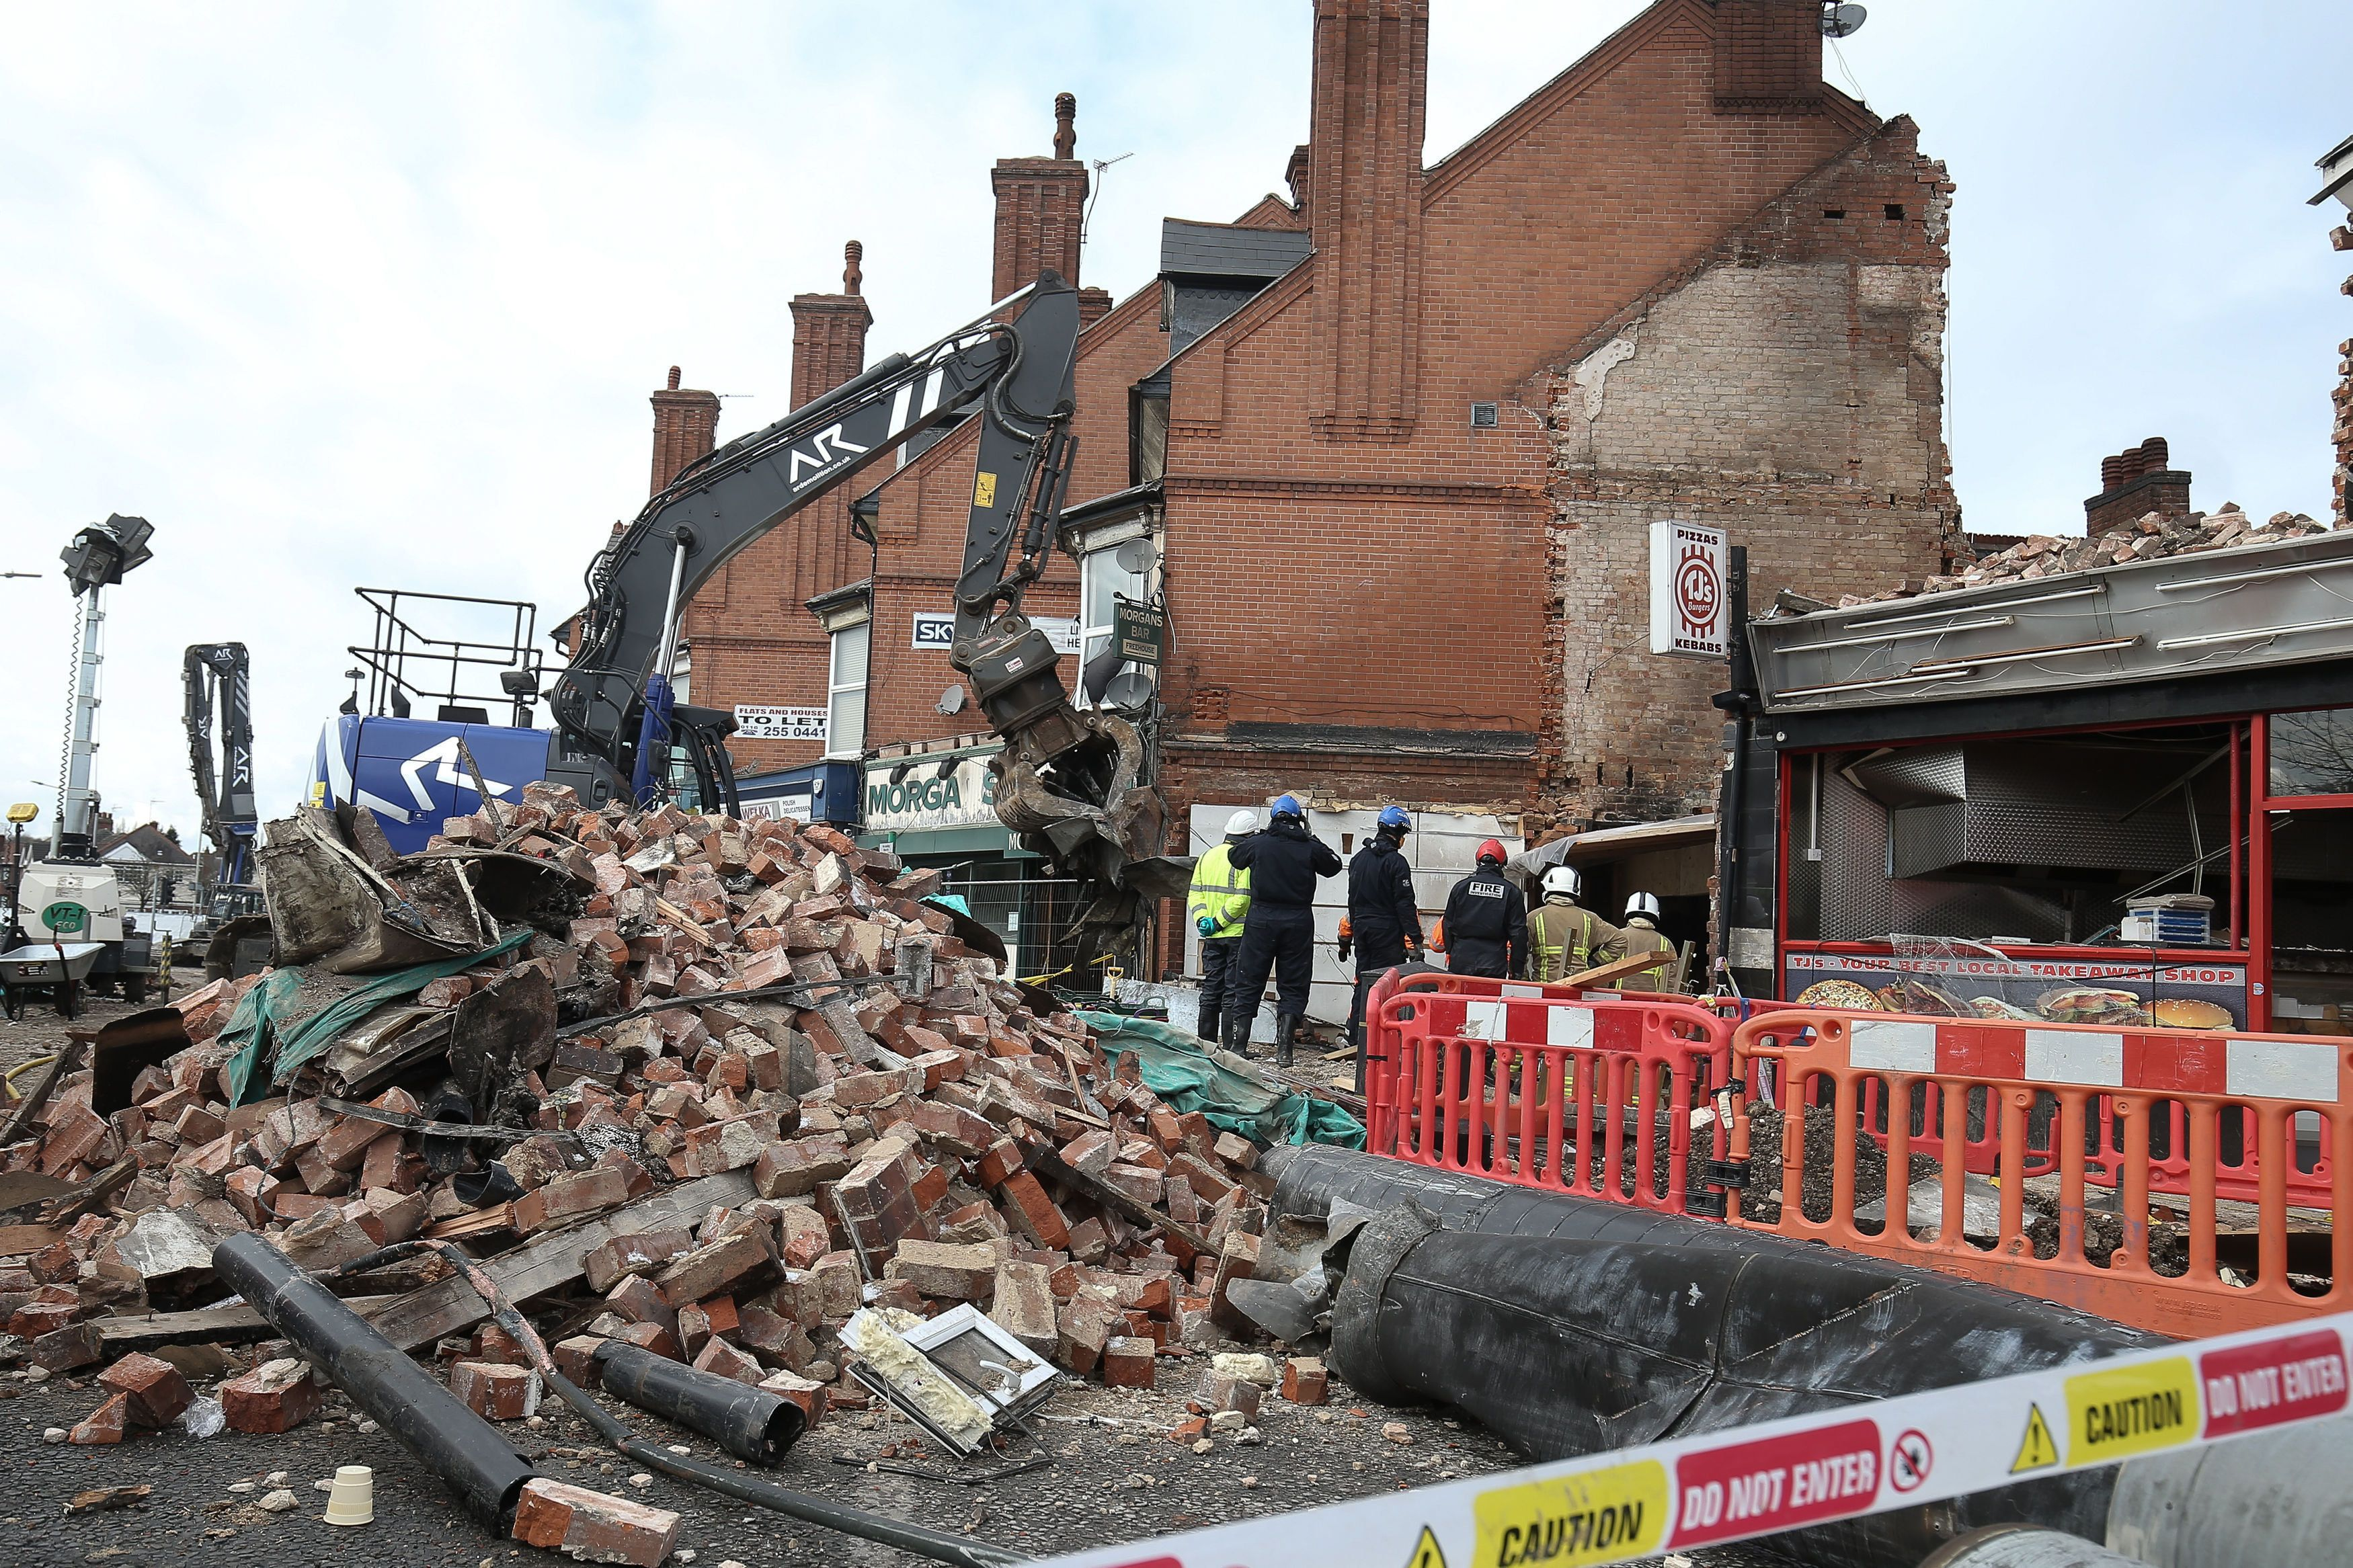 Detectives investigating Leicester explosion continue to quiz men from East Anglia